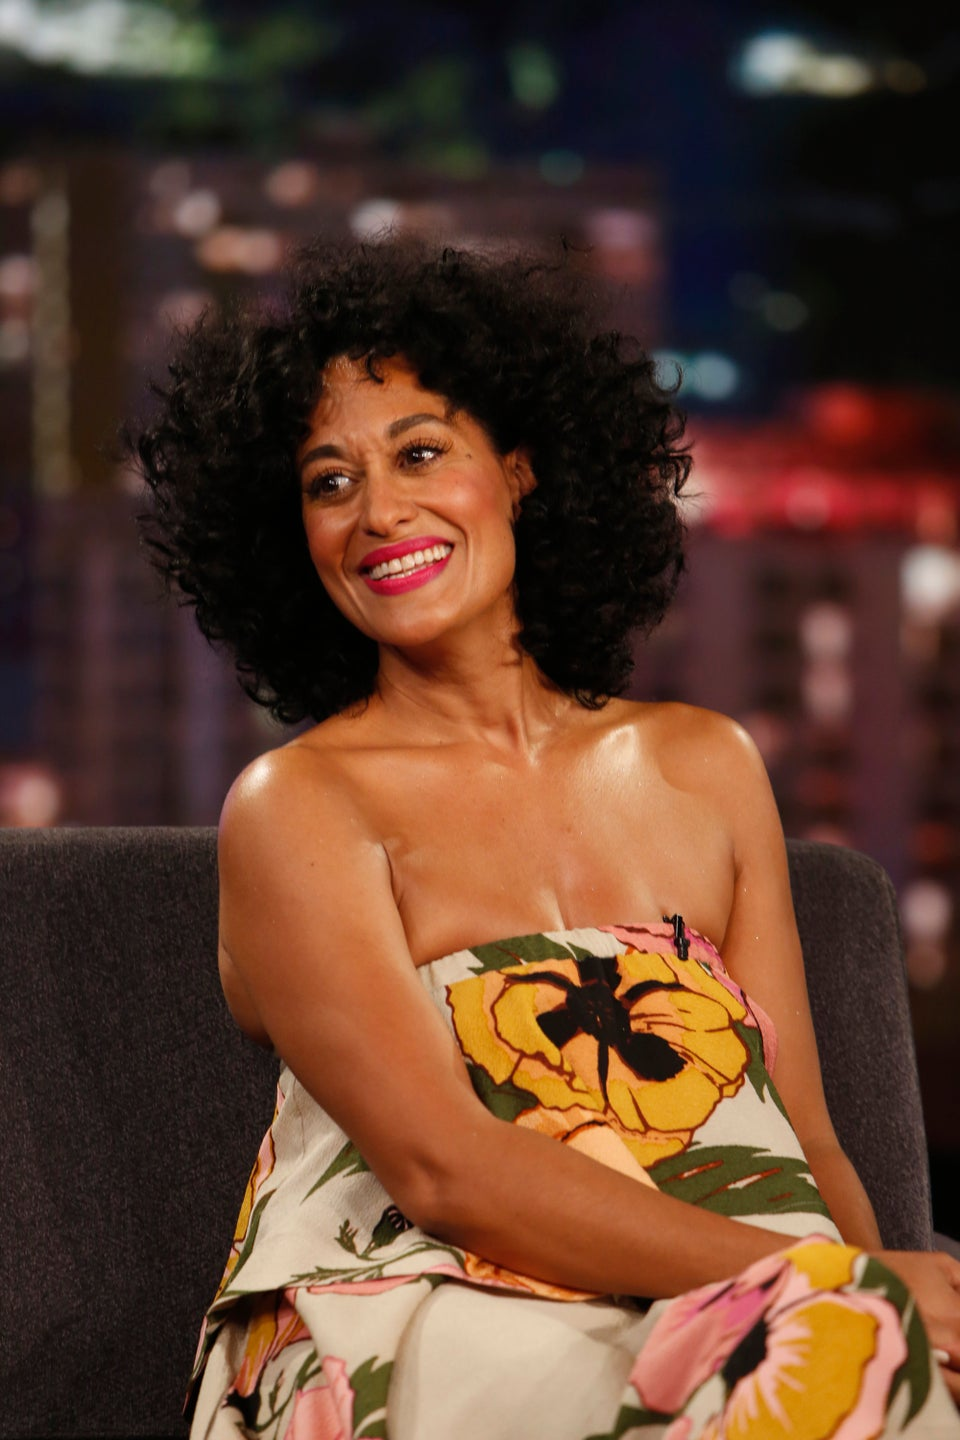 Tracee Ellis Ross is 'proud' of Golden Globes for representing 'diversity of our country'